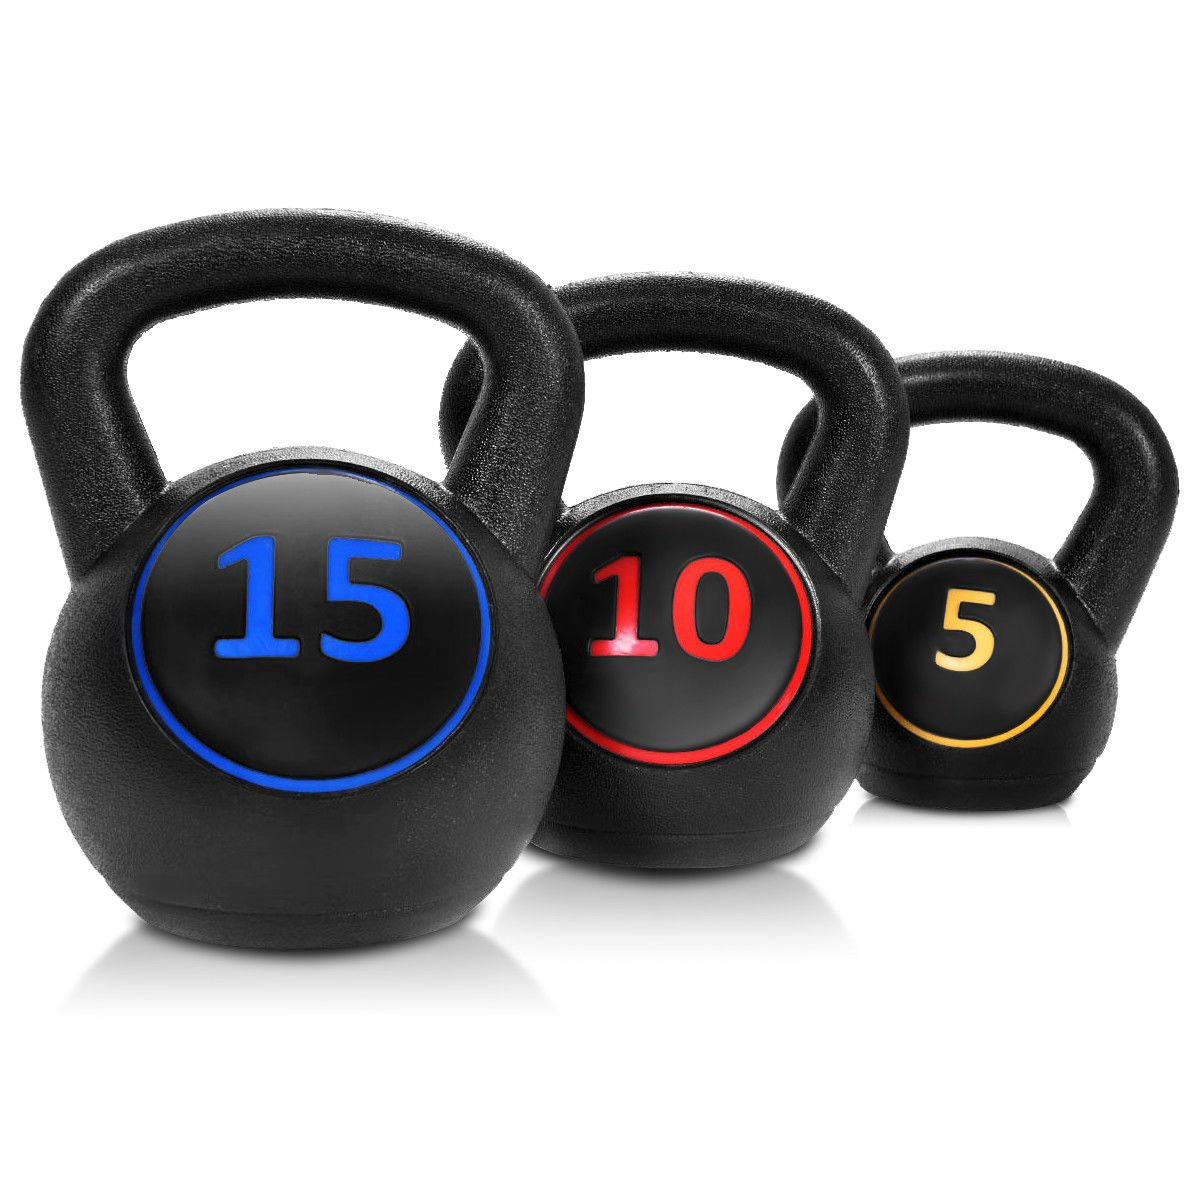 Giantex Home Gym 3 Pcs Vinyl Kettlebell Kit Body Muscles Training Weights 5 10 15lbs Set by Giantex